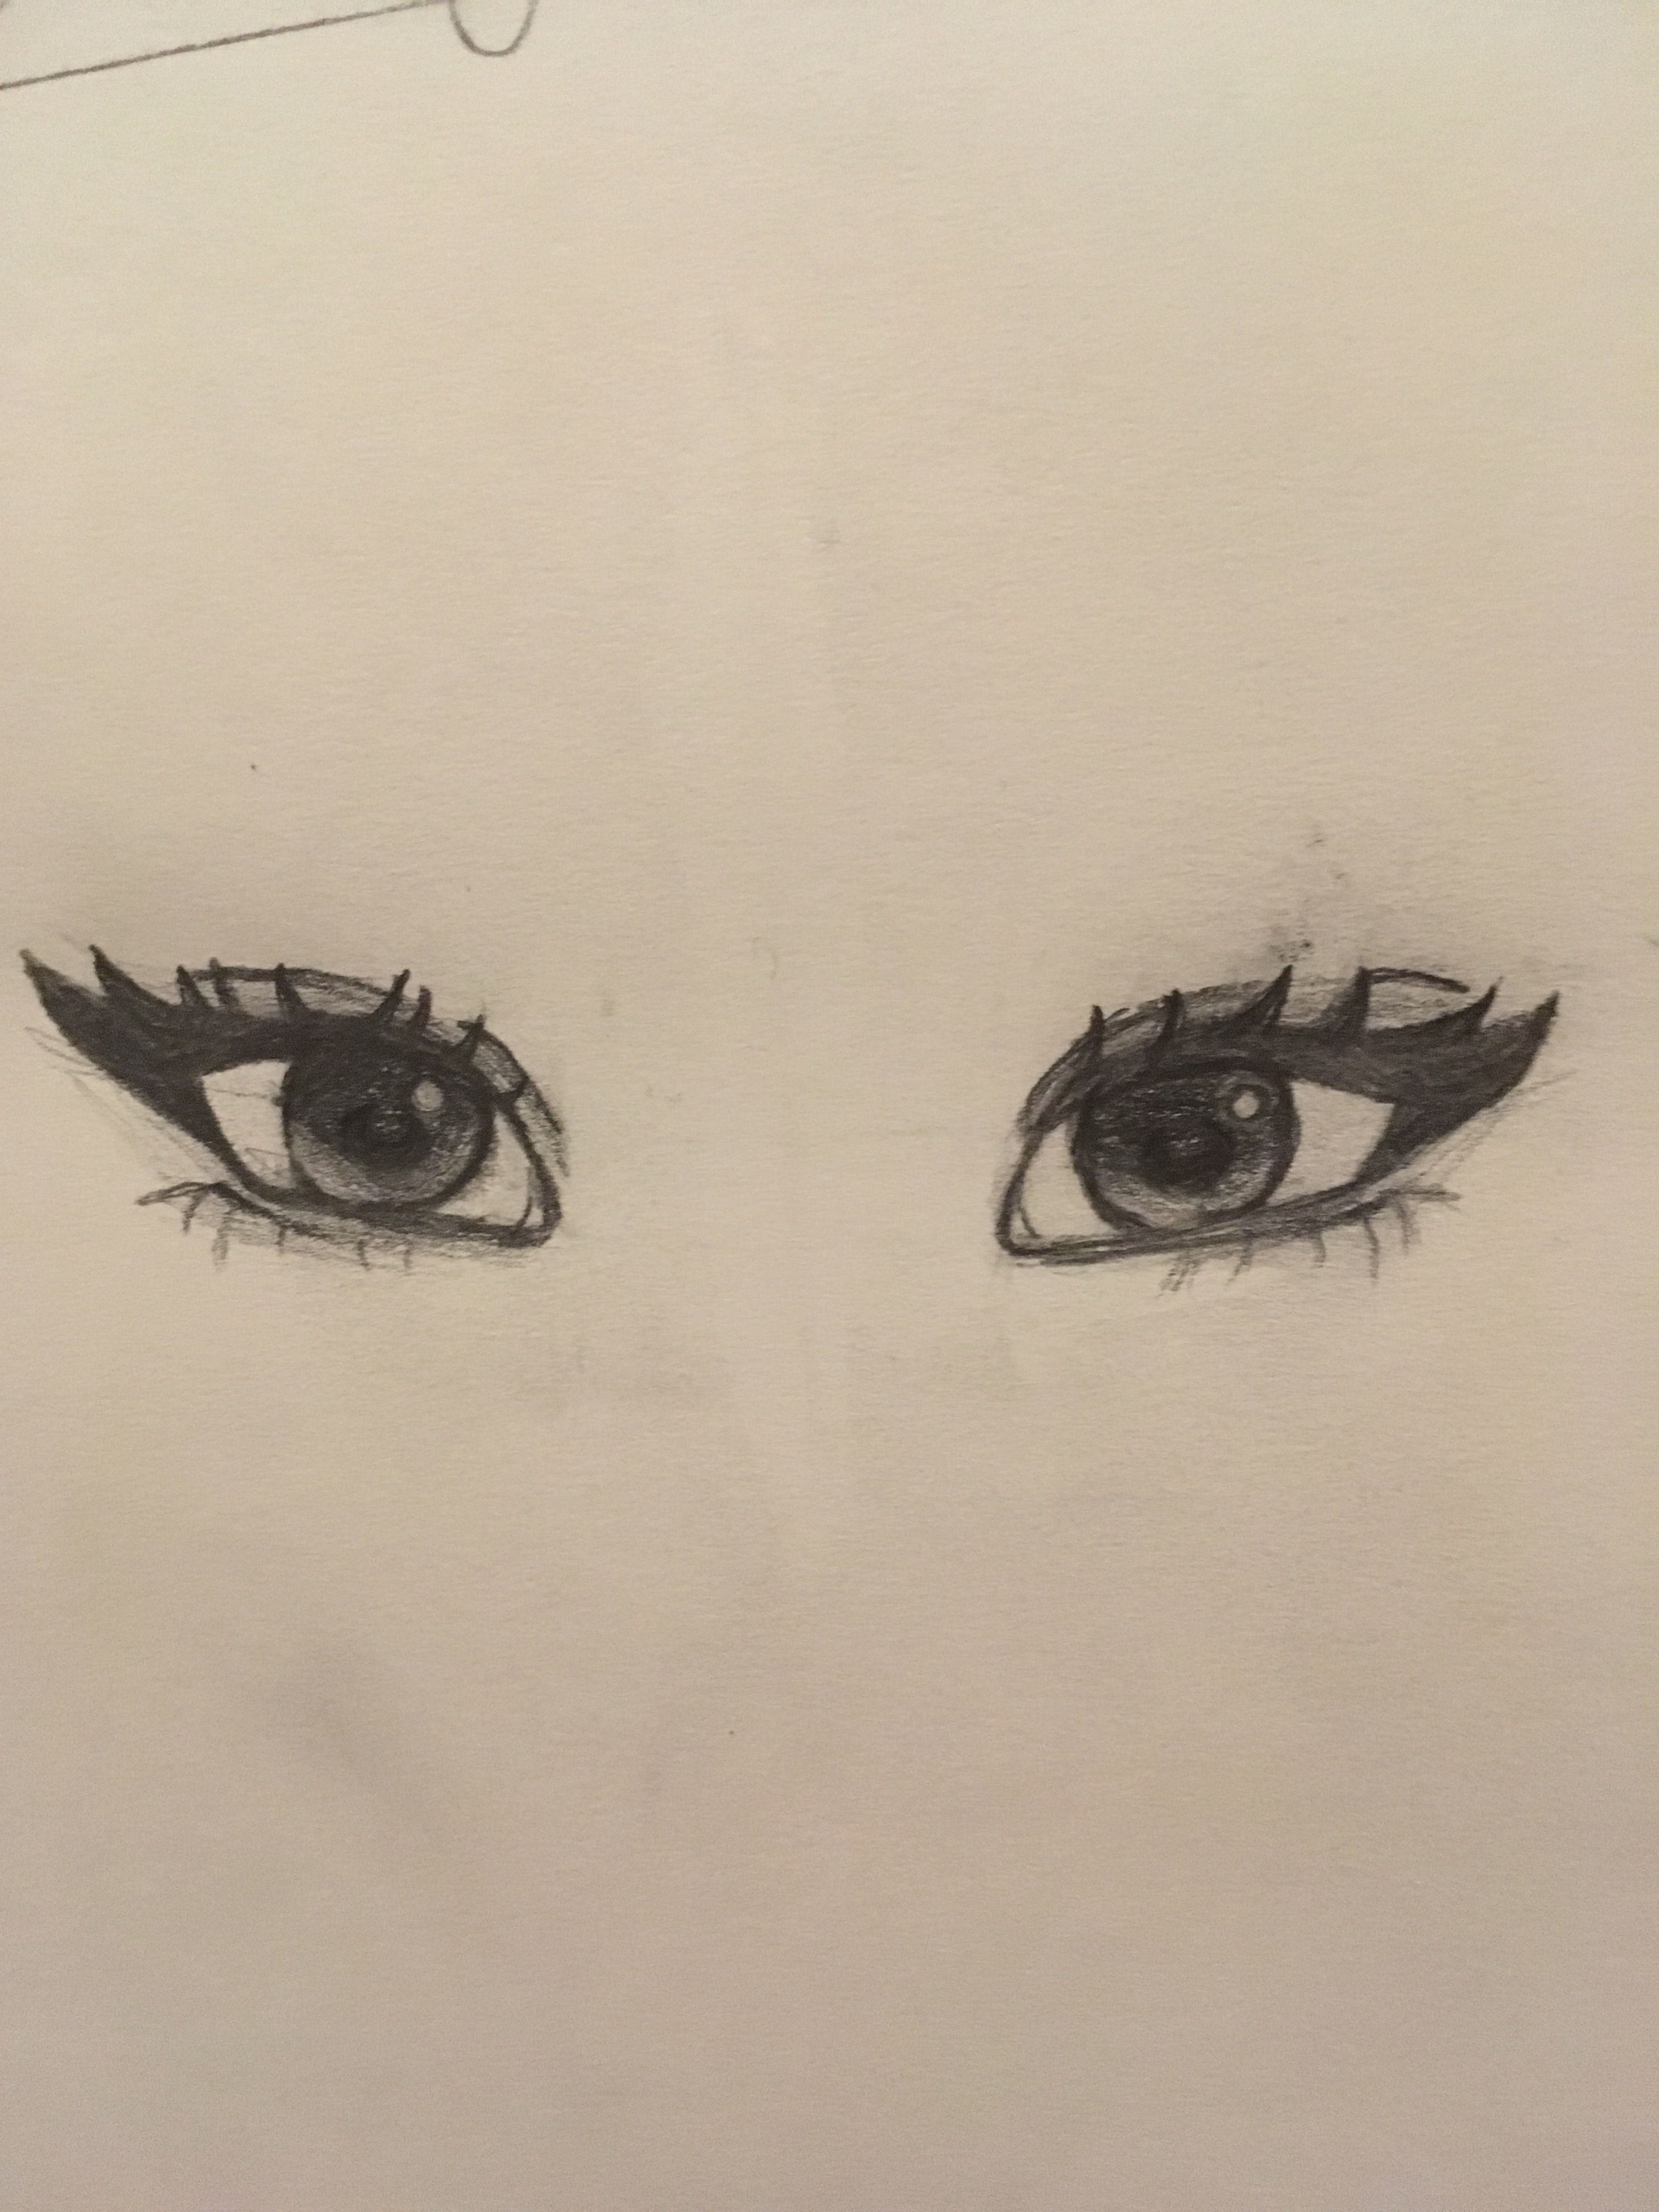 I Tried To Follow A Tutorial On Yt For Eyes And This Is The Result